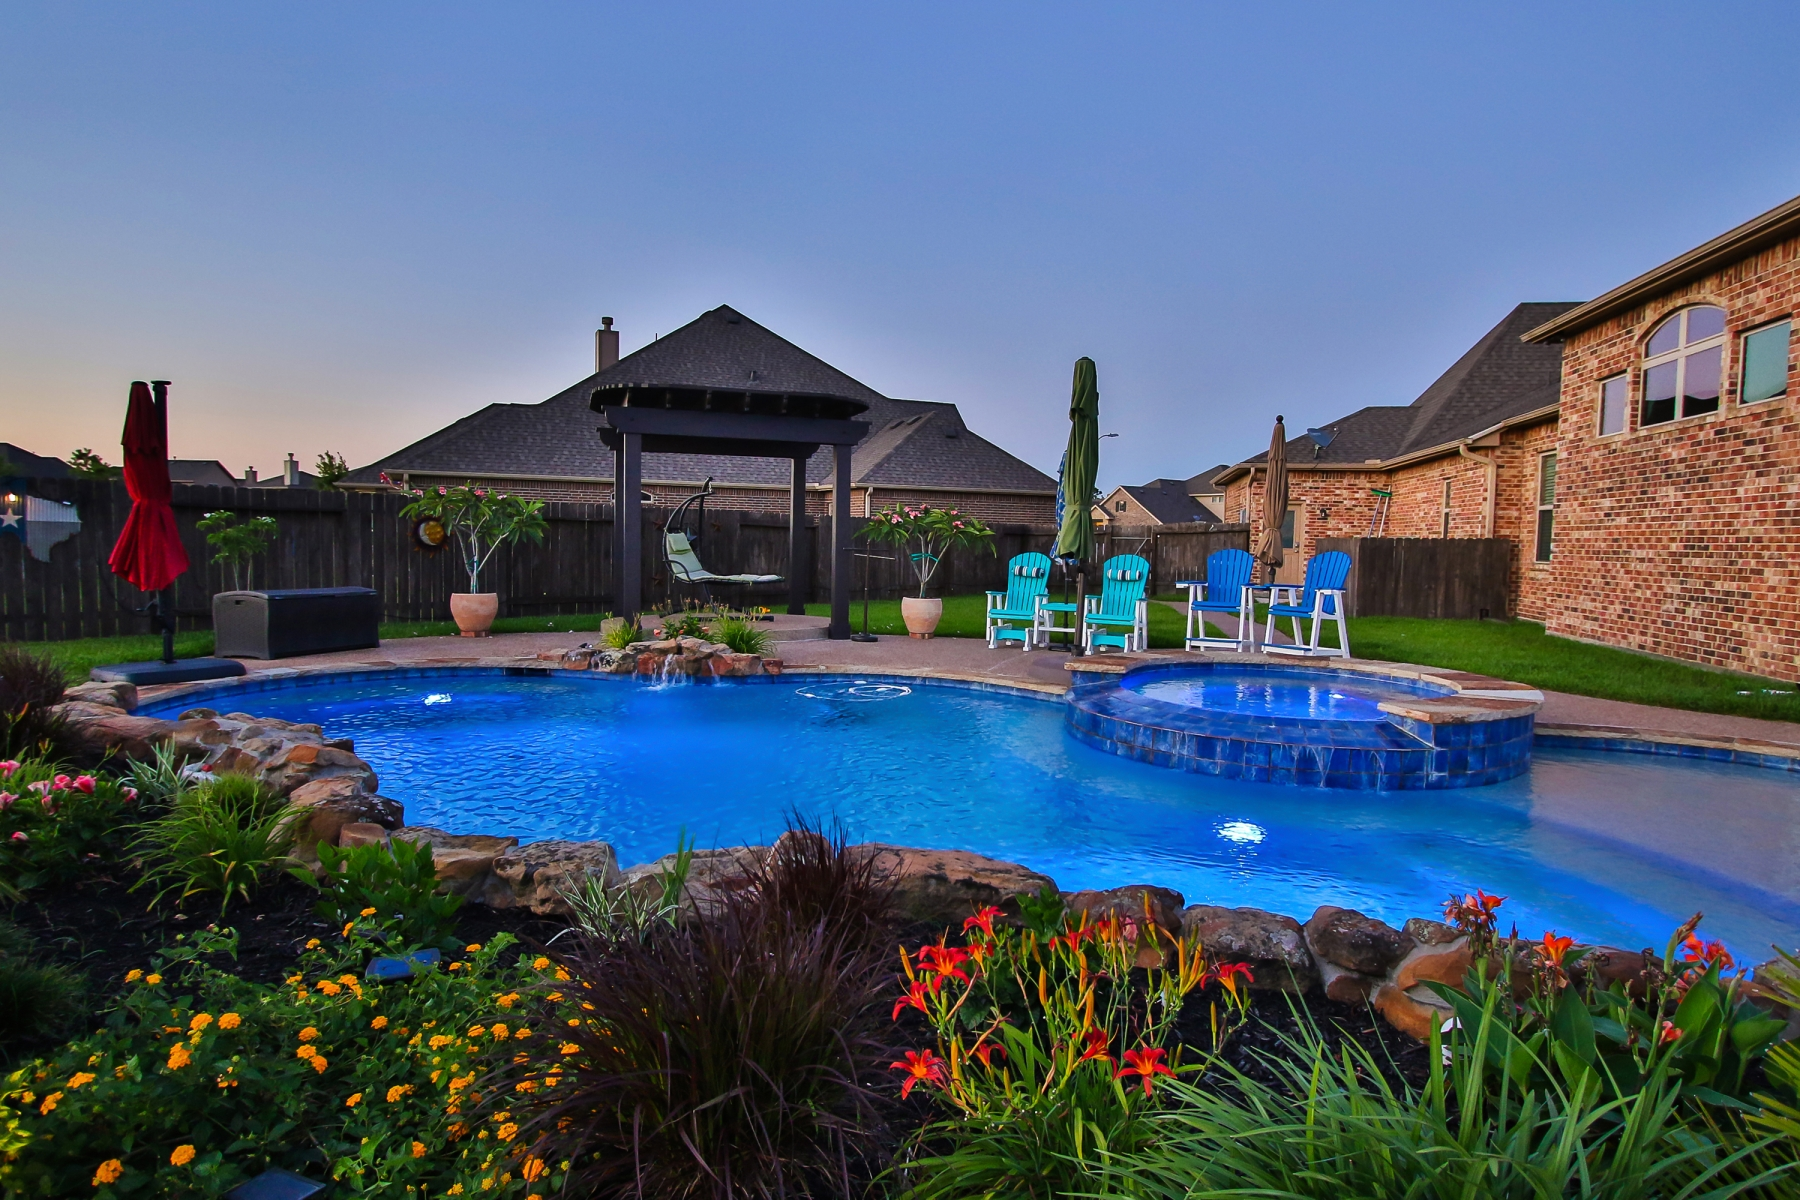 Freeform Pool with Custom Lighting, Tanning Ledge & Raised Spa